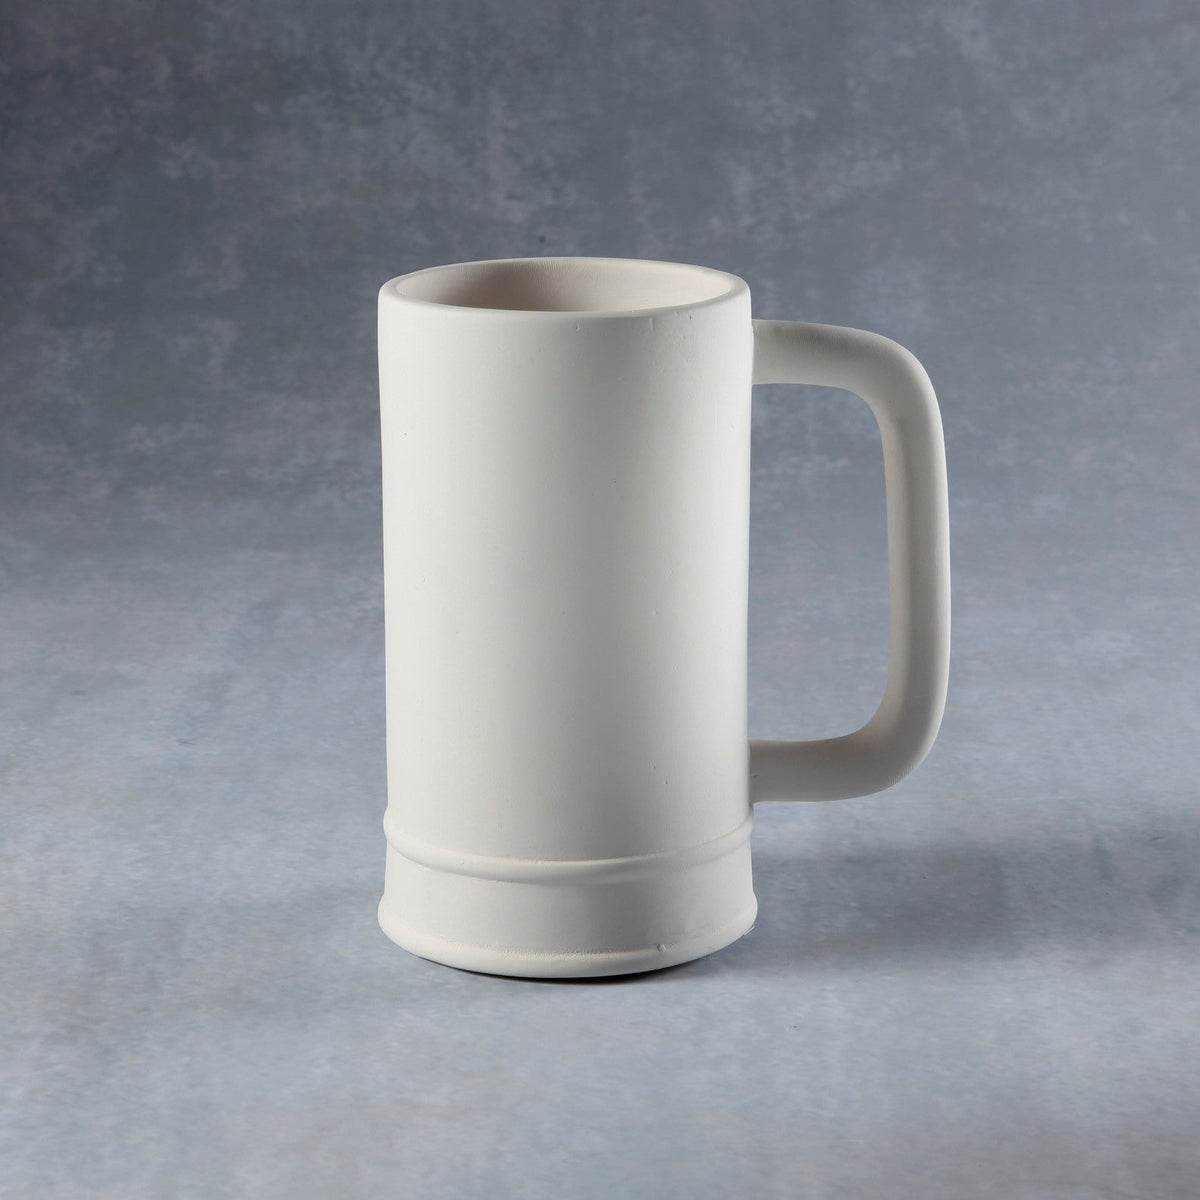 Duncan - 37197 Bisque Beer Mug - Sounding Stone